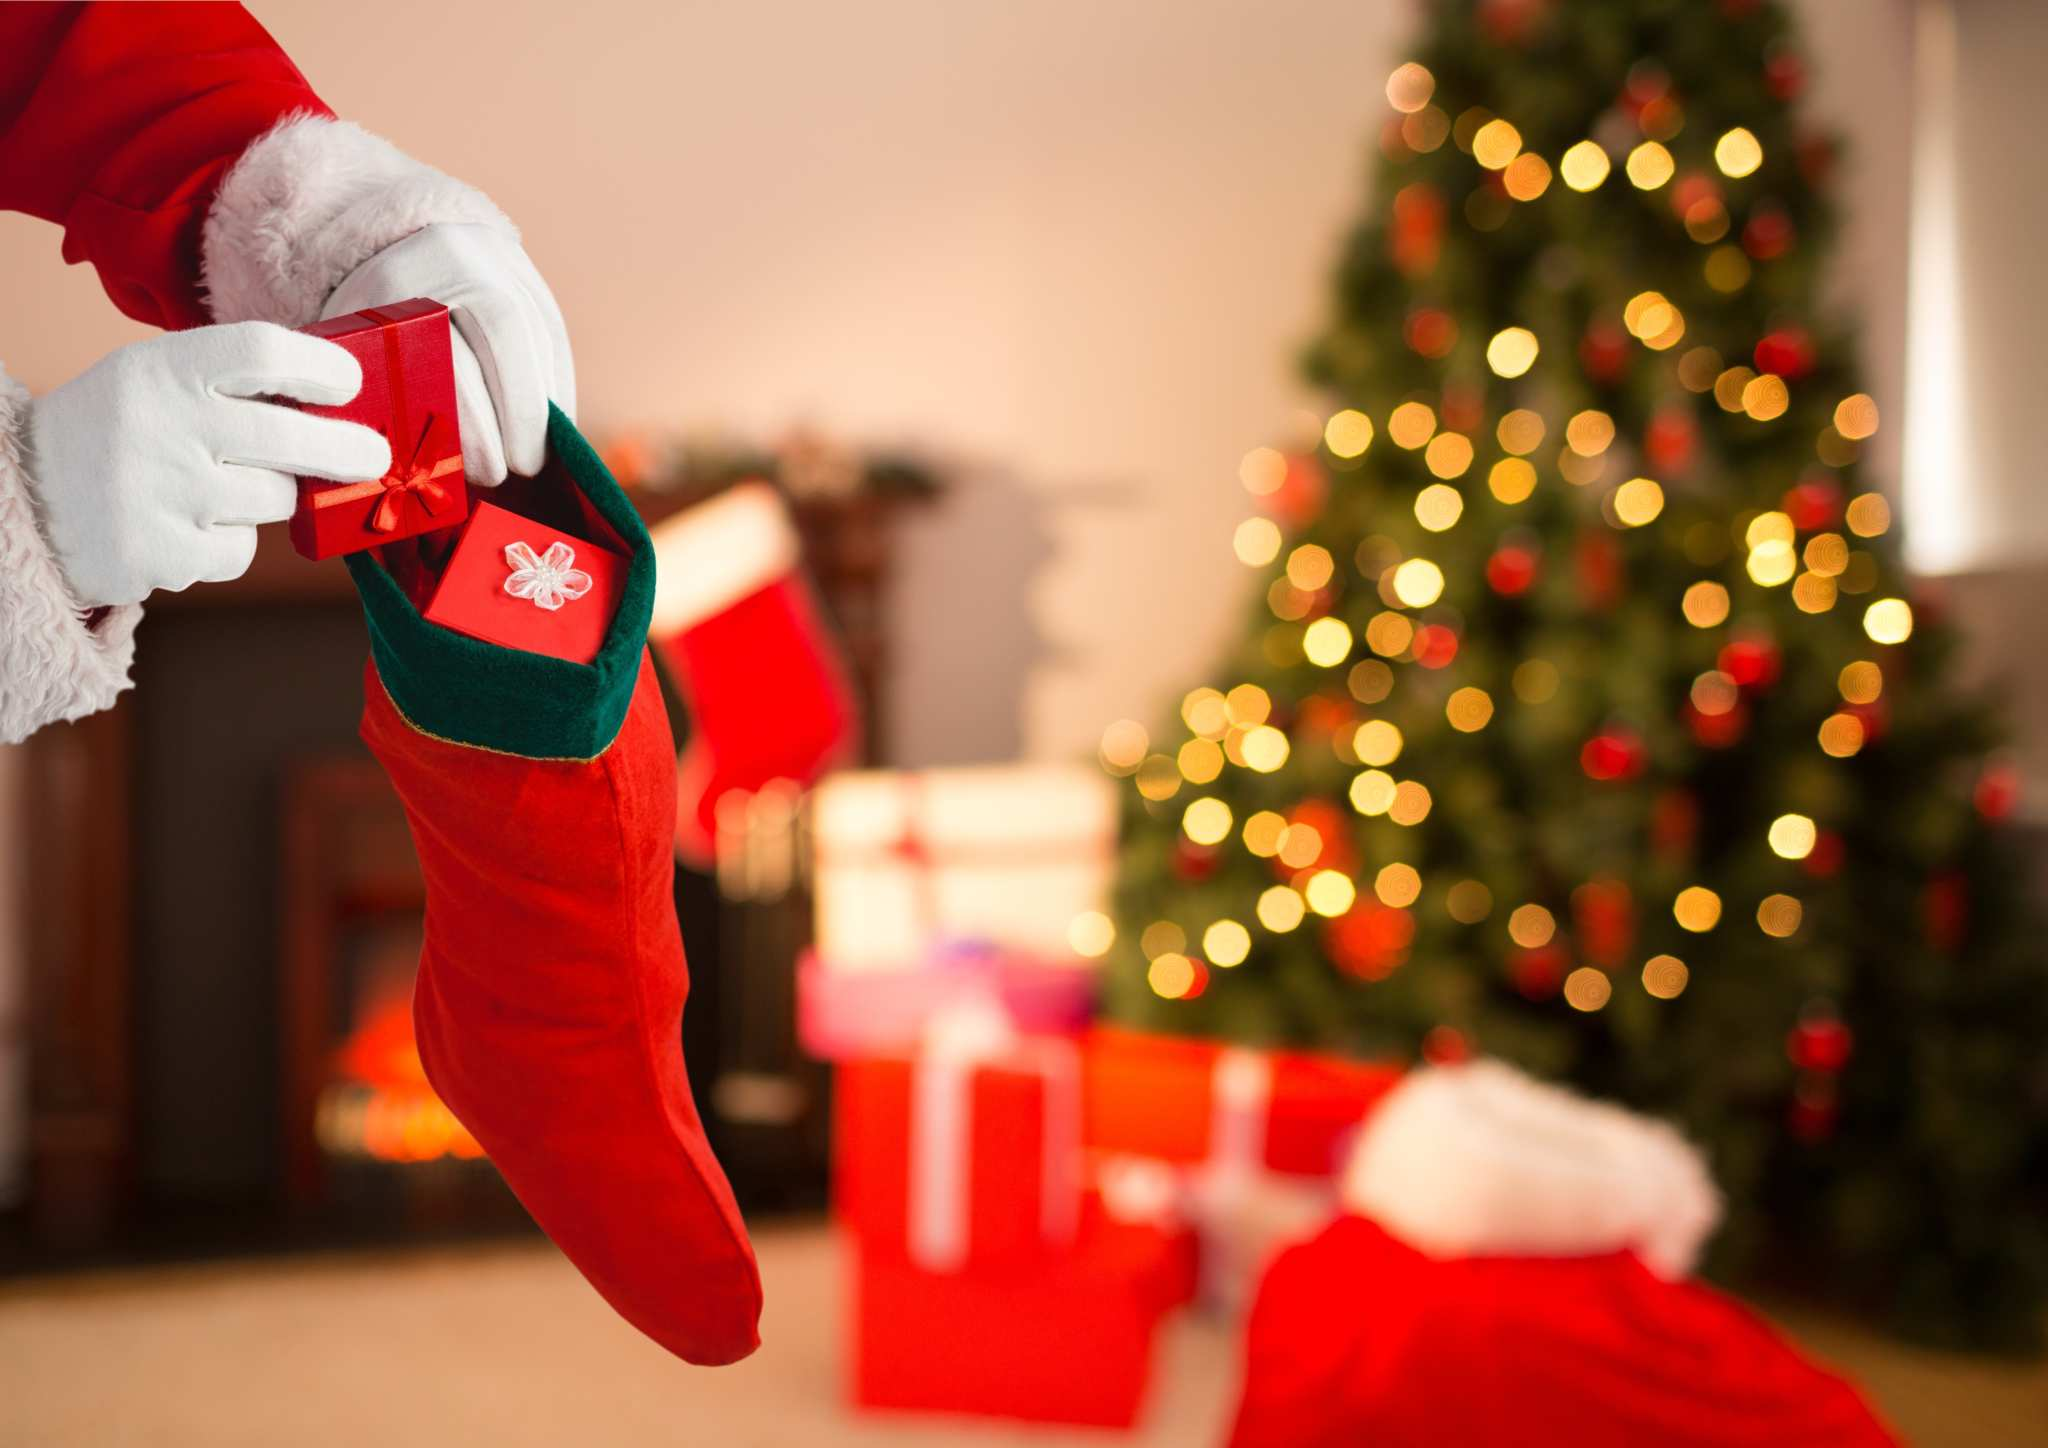 Someone in a santa costume, seen as just a pair of gloved hands in a red coat, packs small gifts into a stocking. There's a tree with presents in the background. Ministry Of Hemp's Holiday Hemp & CBD Gift Guide can help you share the gift of hemp with your family and friends.